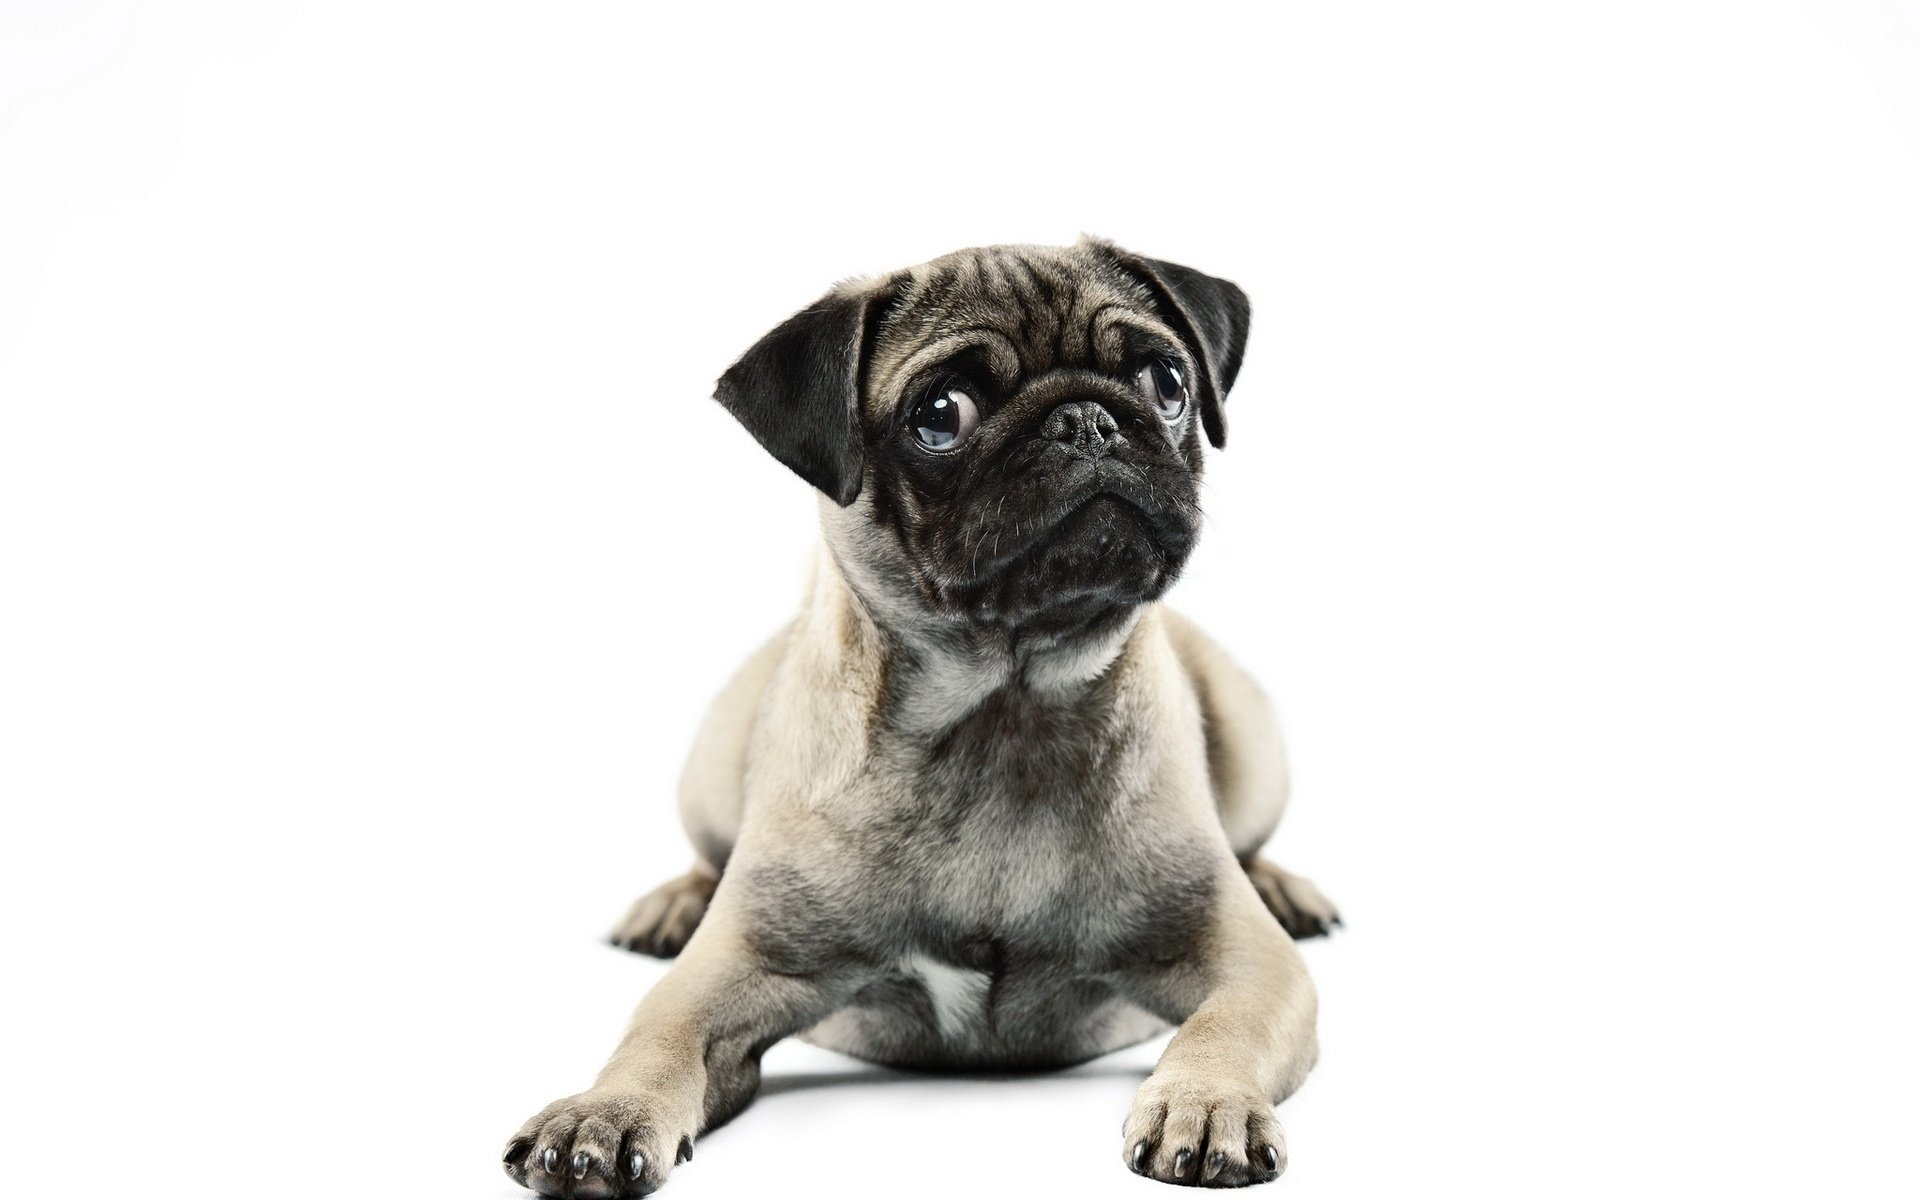 All Wallpapers Pug Dog Hd Wallpapers: Background Image